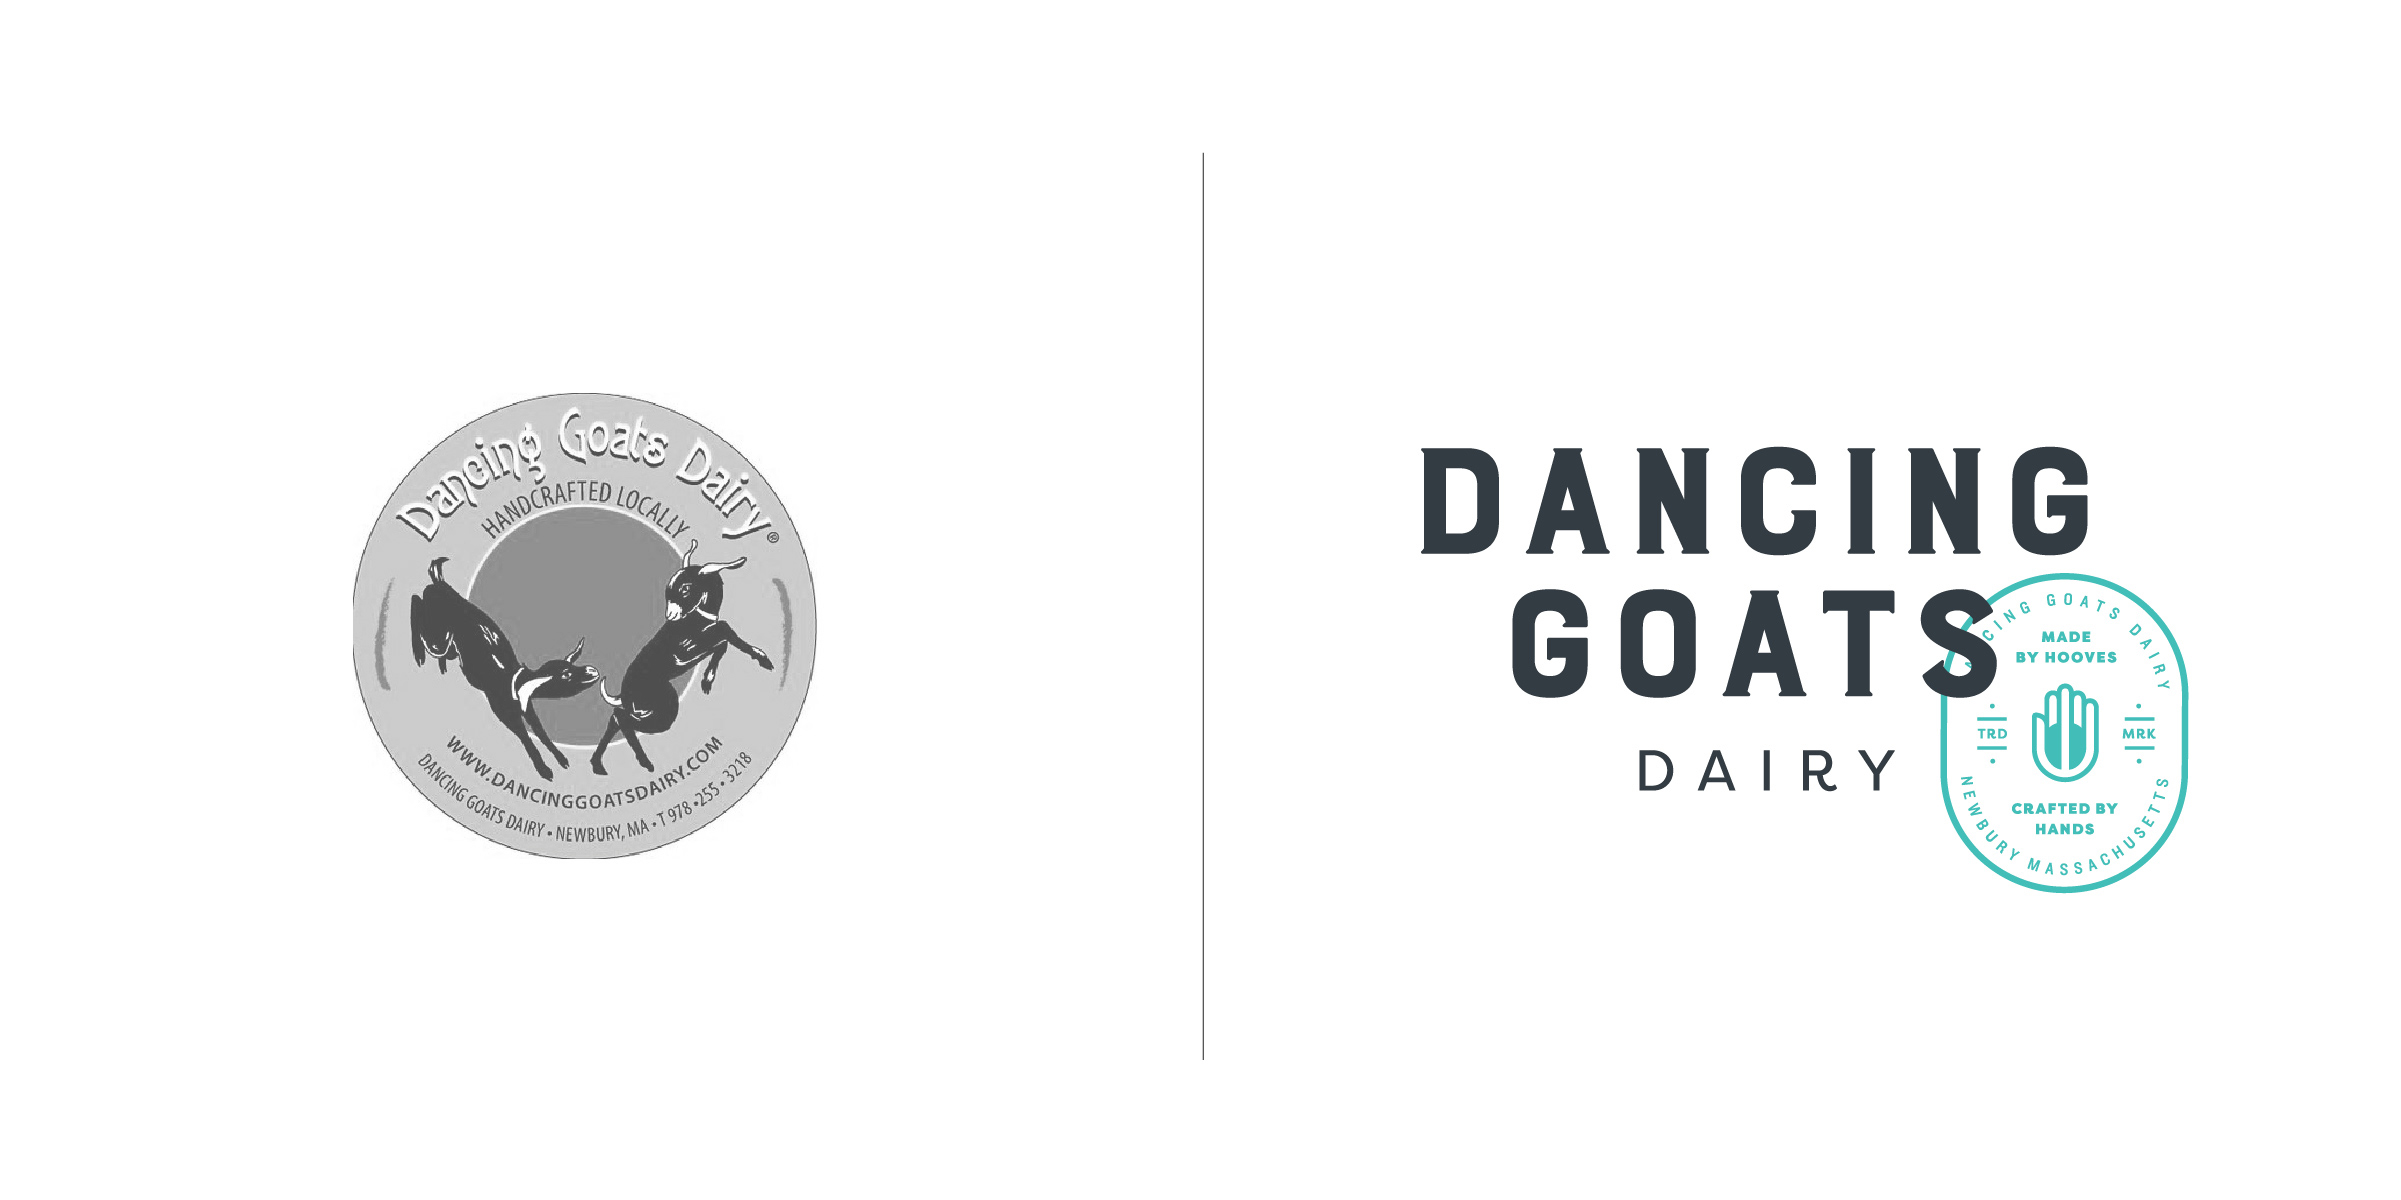 The client —   Dancing Goats Dairy is a goat dairy on the North Shore of Massachusetts run by a young, sassy female goat whisperer and exceptionally talented cheese maker.  The goal — To articulate a design that features their ridiculously tasty, high quality, classic French-style product with a modern flair for fusion. The design needed to honor the old-world cheese making craft while adding a sophisticated edge. While fresh, vibrant and youthful to compliment a new age female farmer, the DGD logo is also bold enough to compete within a traditionally male-dominated field.  (View more of the project here.)